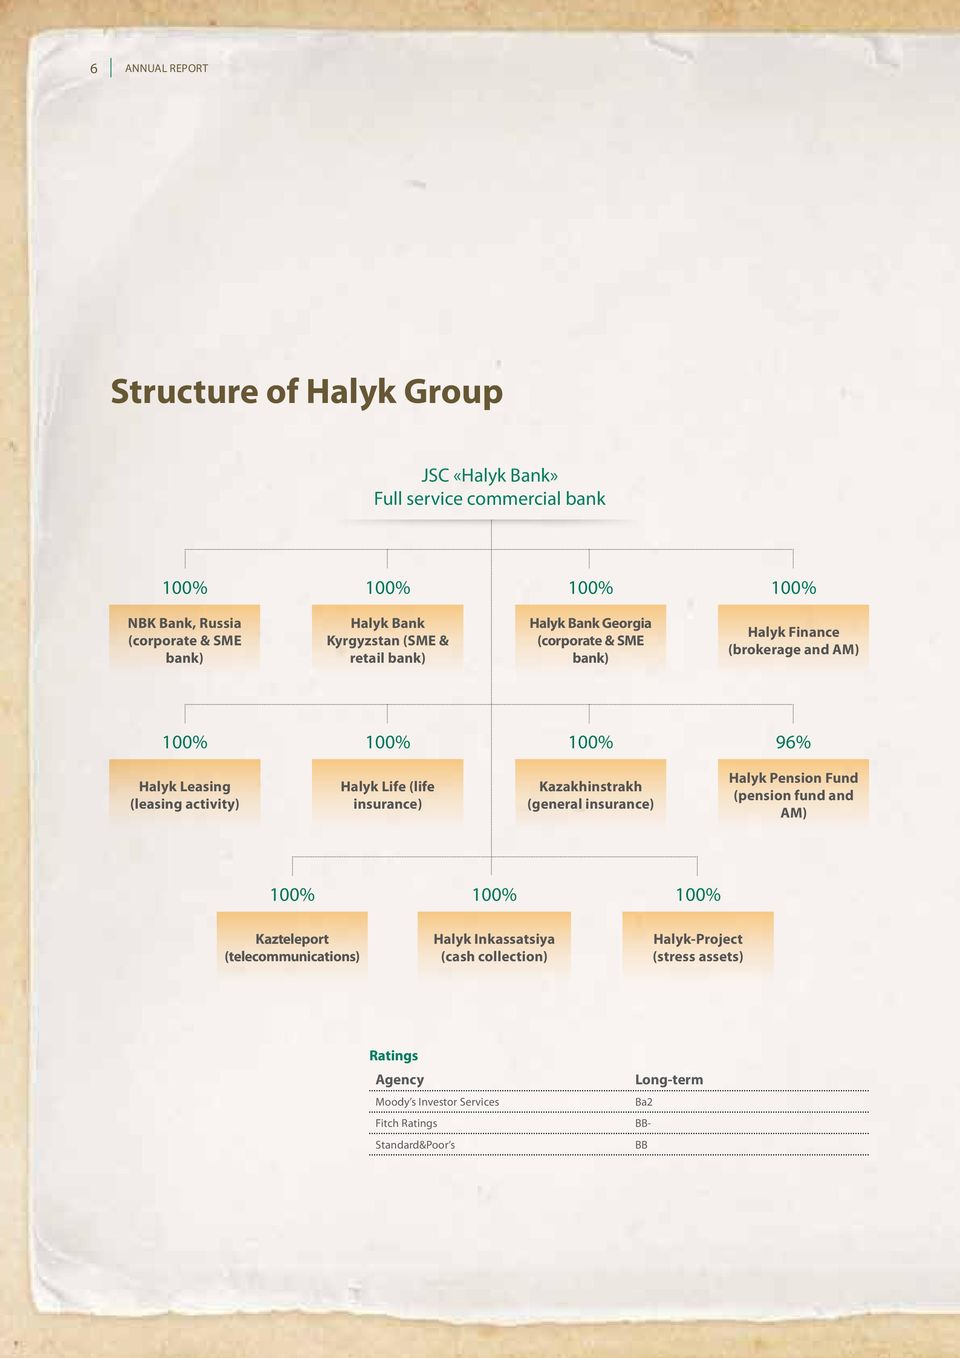 activity) Halyk Life (life insurance) Kazakhinstrakh (general insurance) Halyk Pension Fund (pension fund and AM) 100% 100% 100% Kazteleport